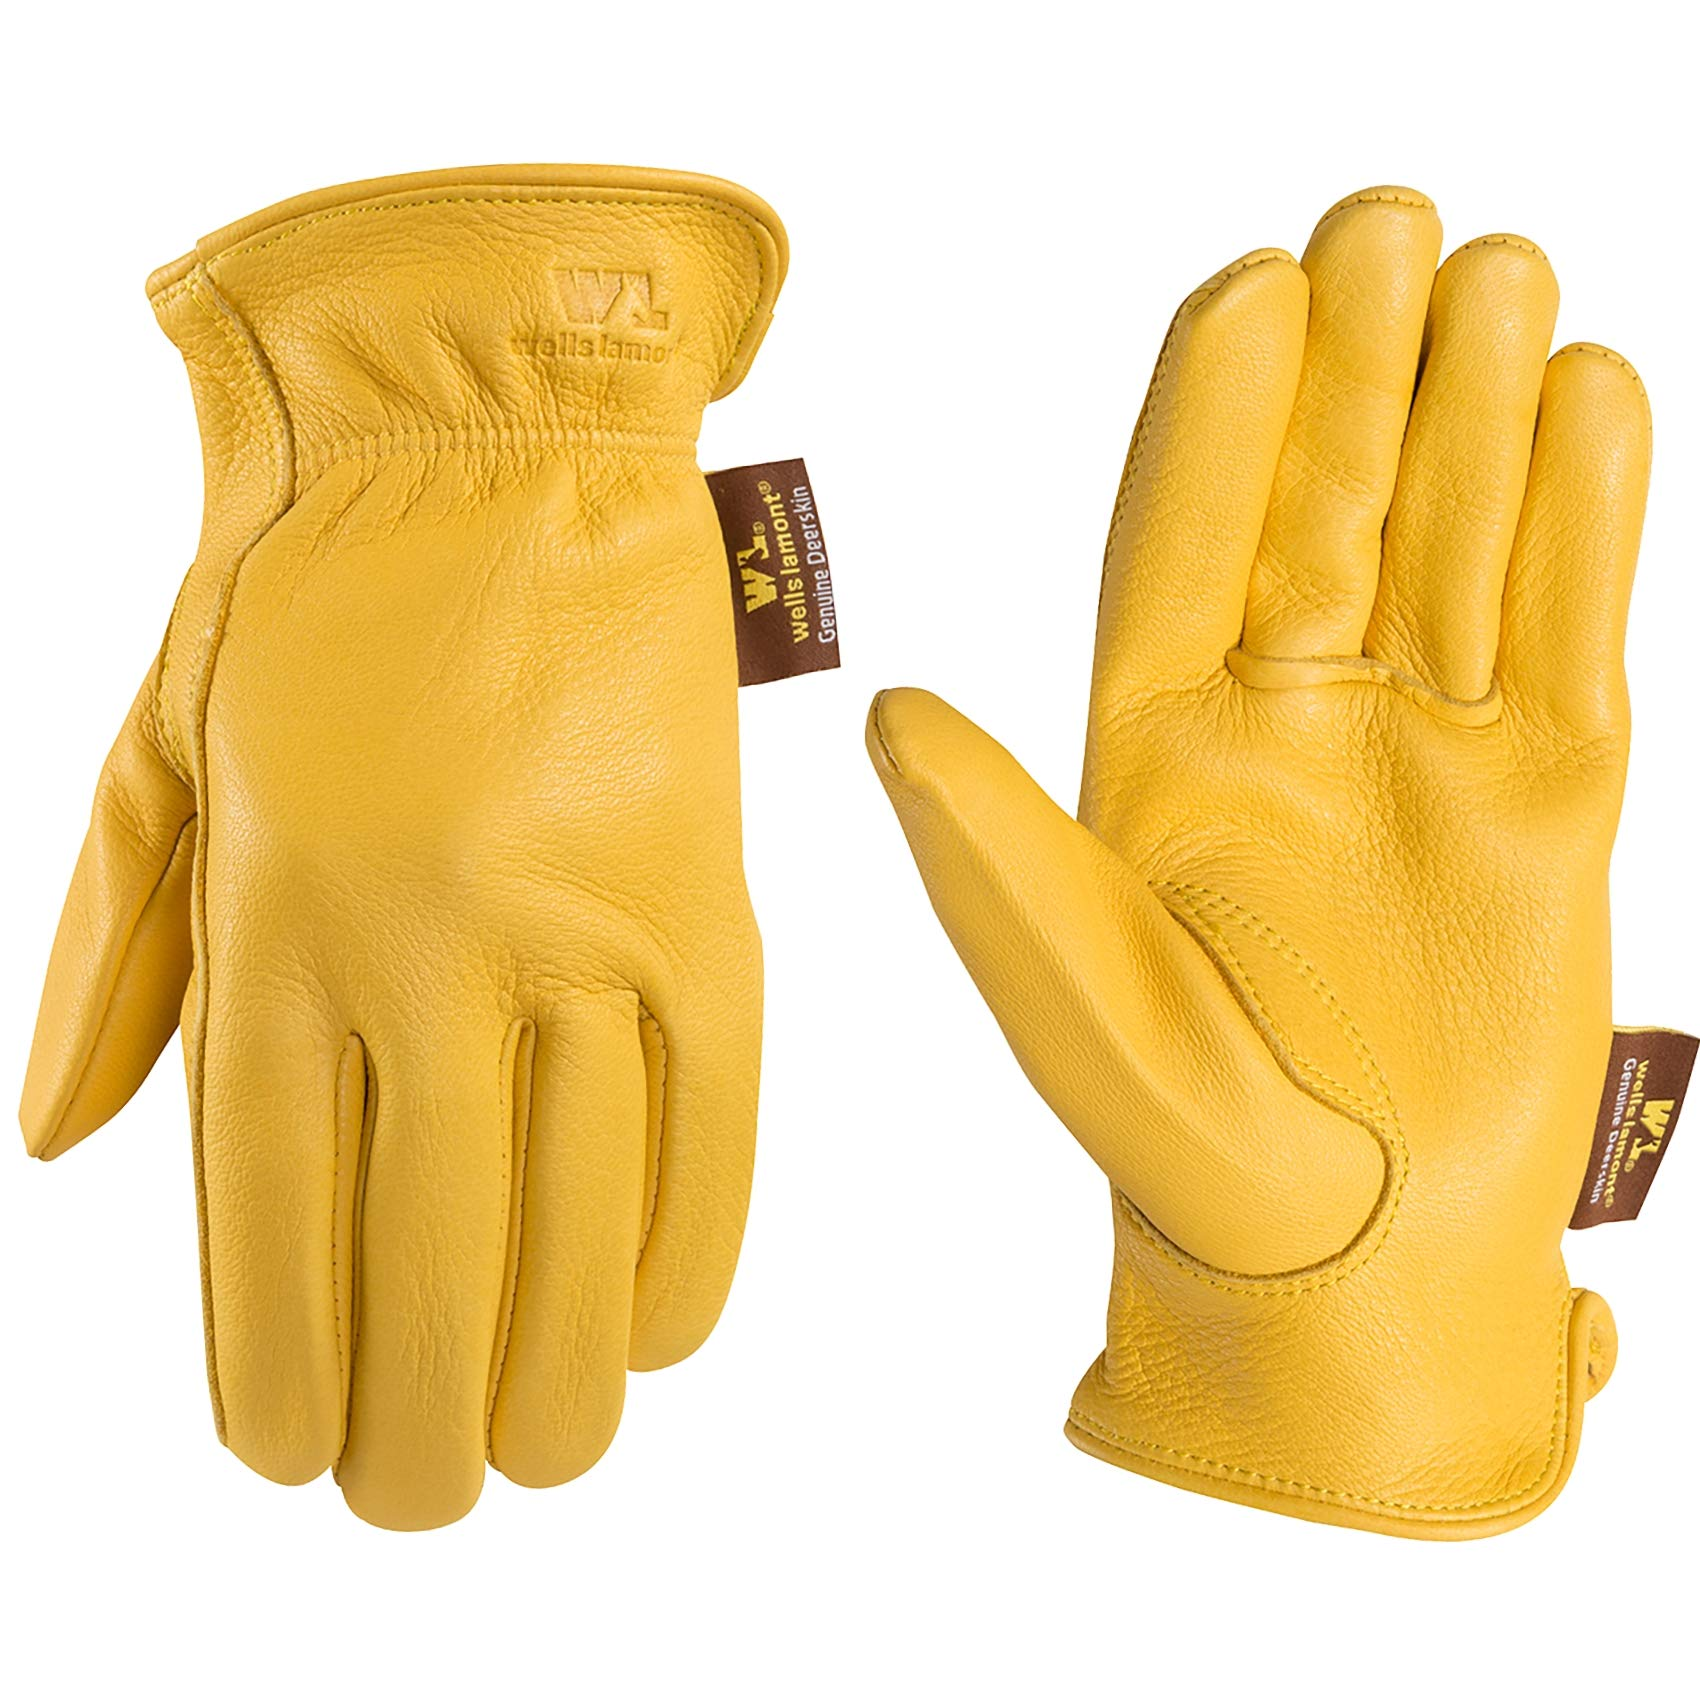 Women S Soft Deerskin Leather Work Gloves Wells Lamont 987s Yellow Small Womens Small Soft Leather Work Gloves Amazon Com Deerskin